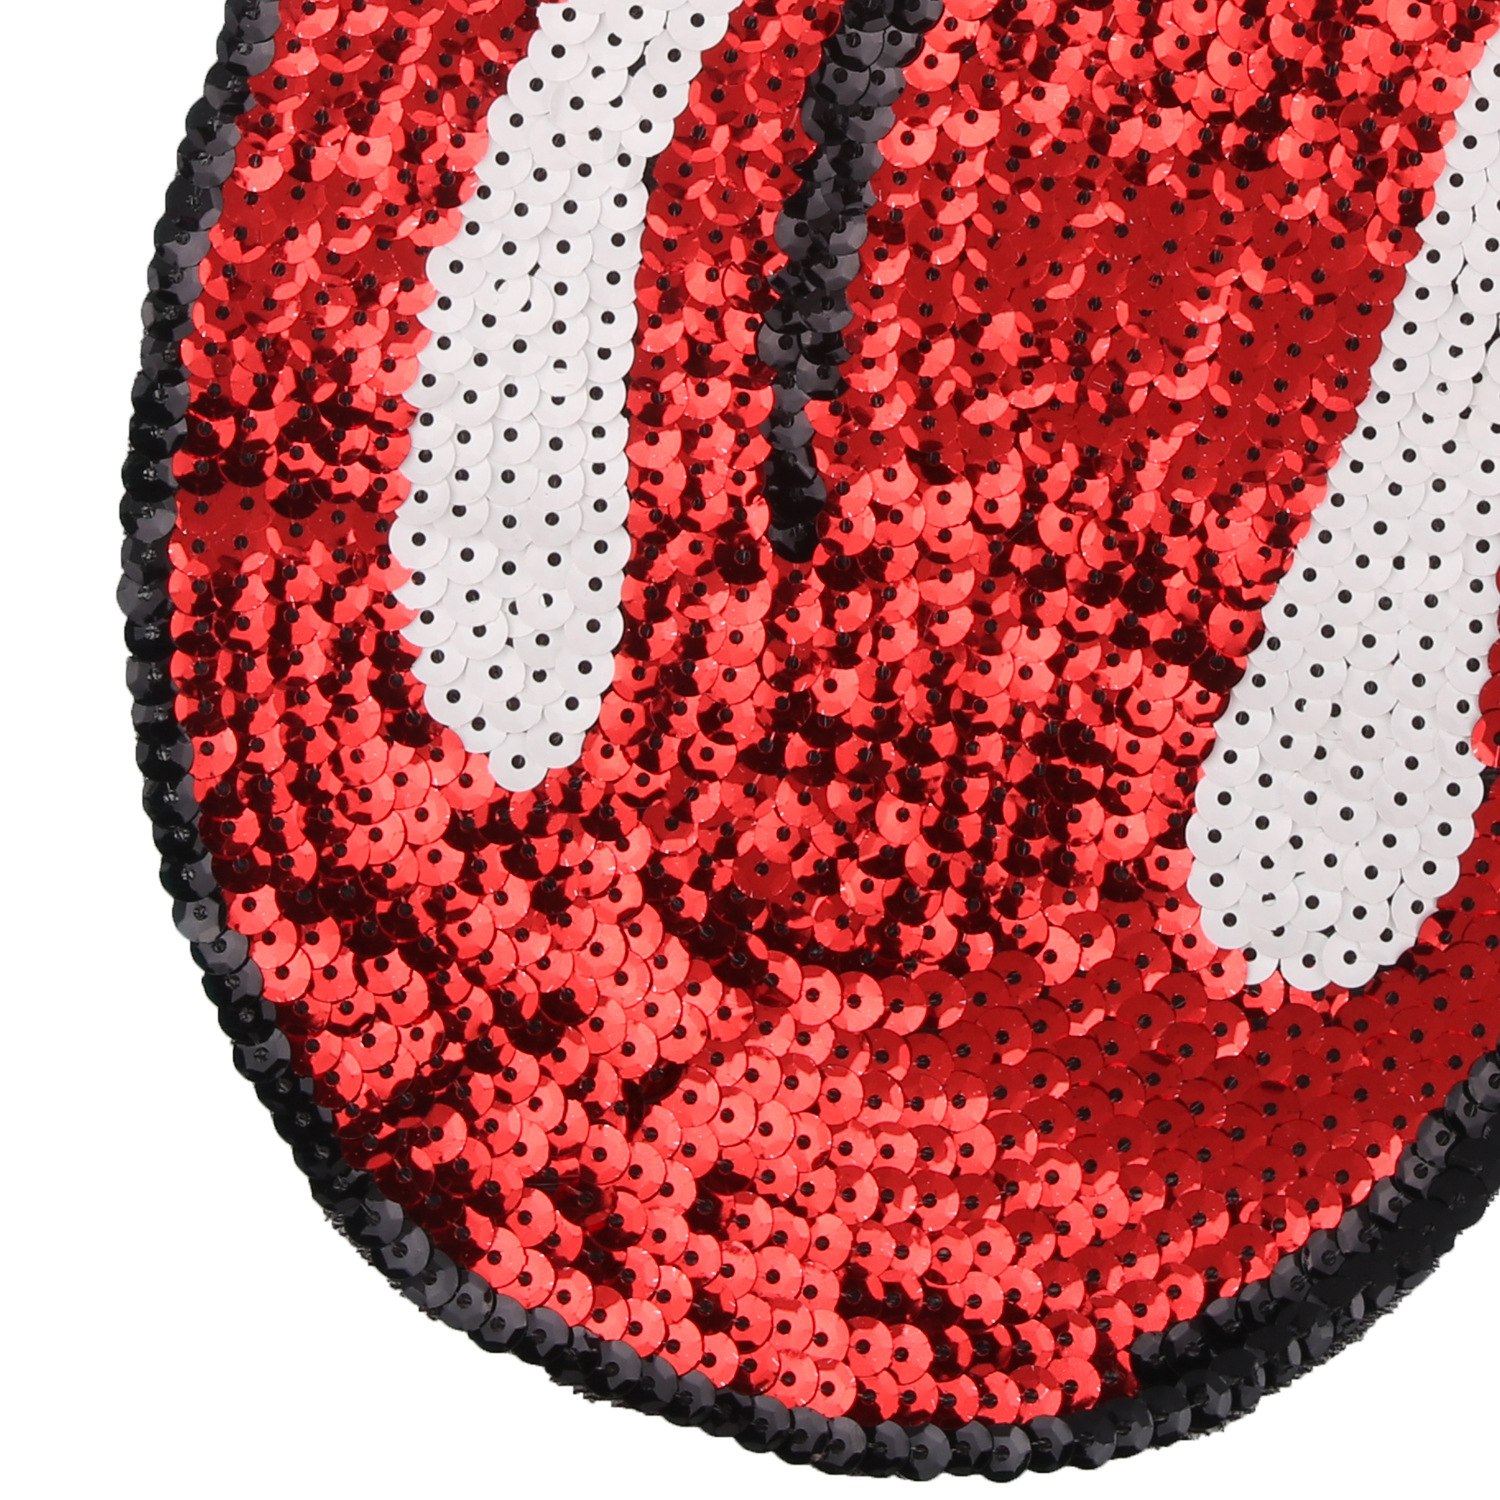 Red lip The Rolling Stones Sew on Appliques Clothes Embroidered sequins  patches for clothing DIY Motif Rock and roll Tide brand-in Patches from Home  ... 700bfdb14e05